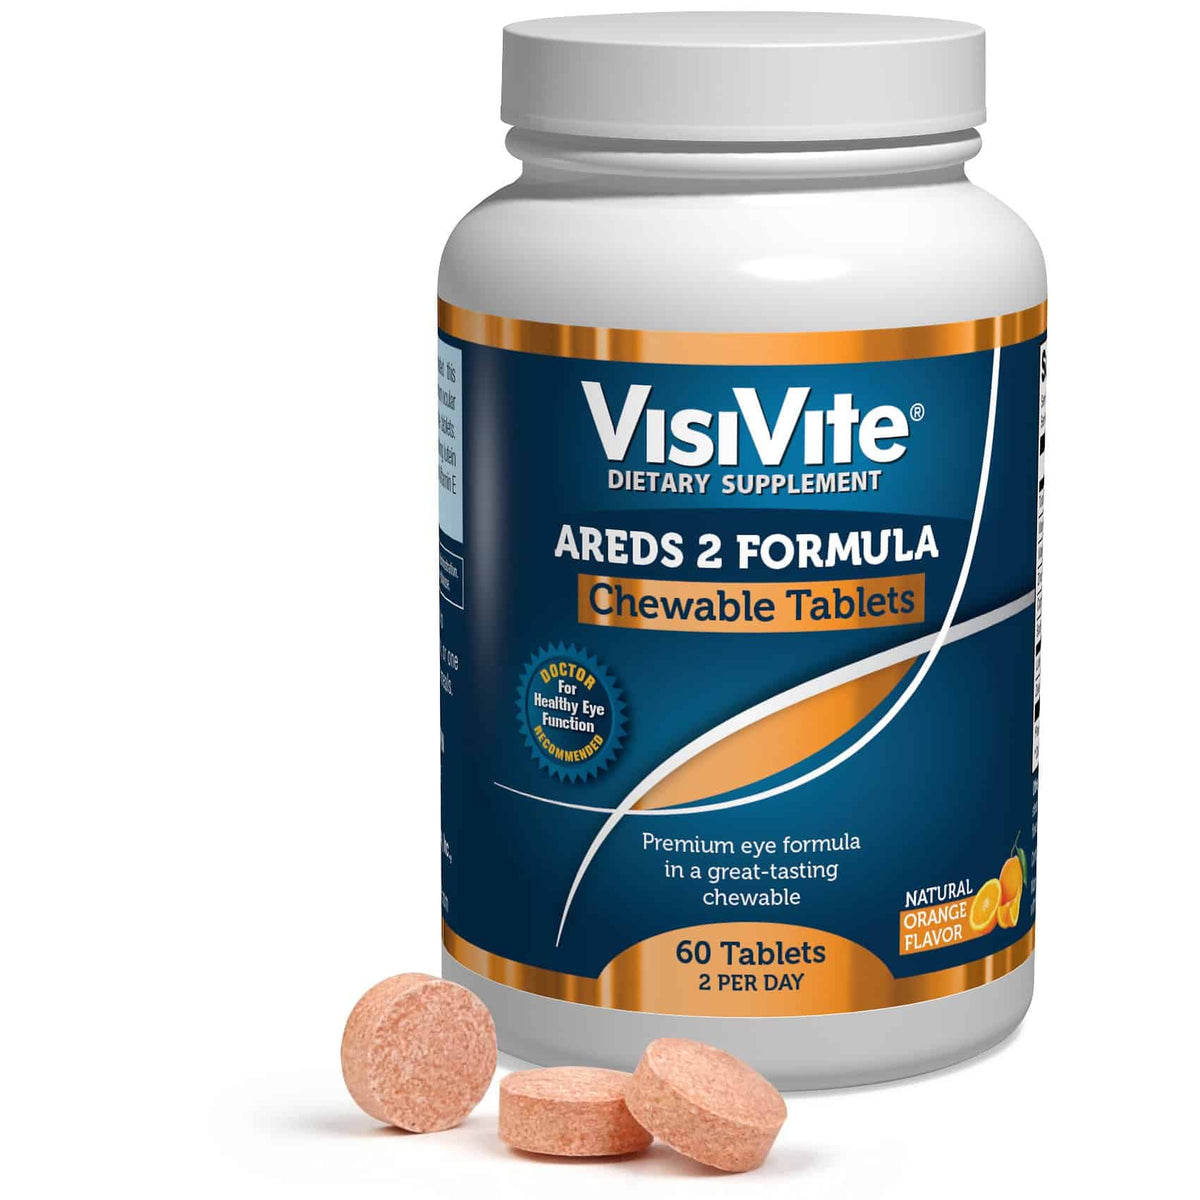 VisiVite Sugar*Free AREDS 2 Chewable Tablets